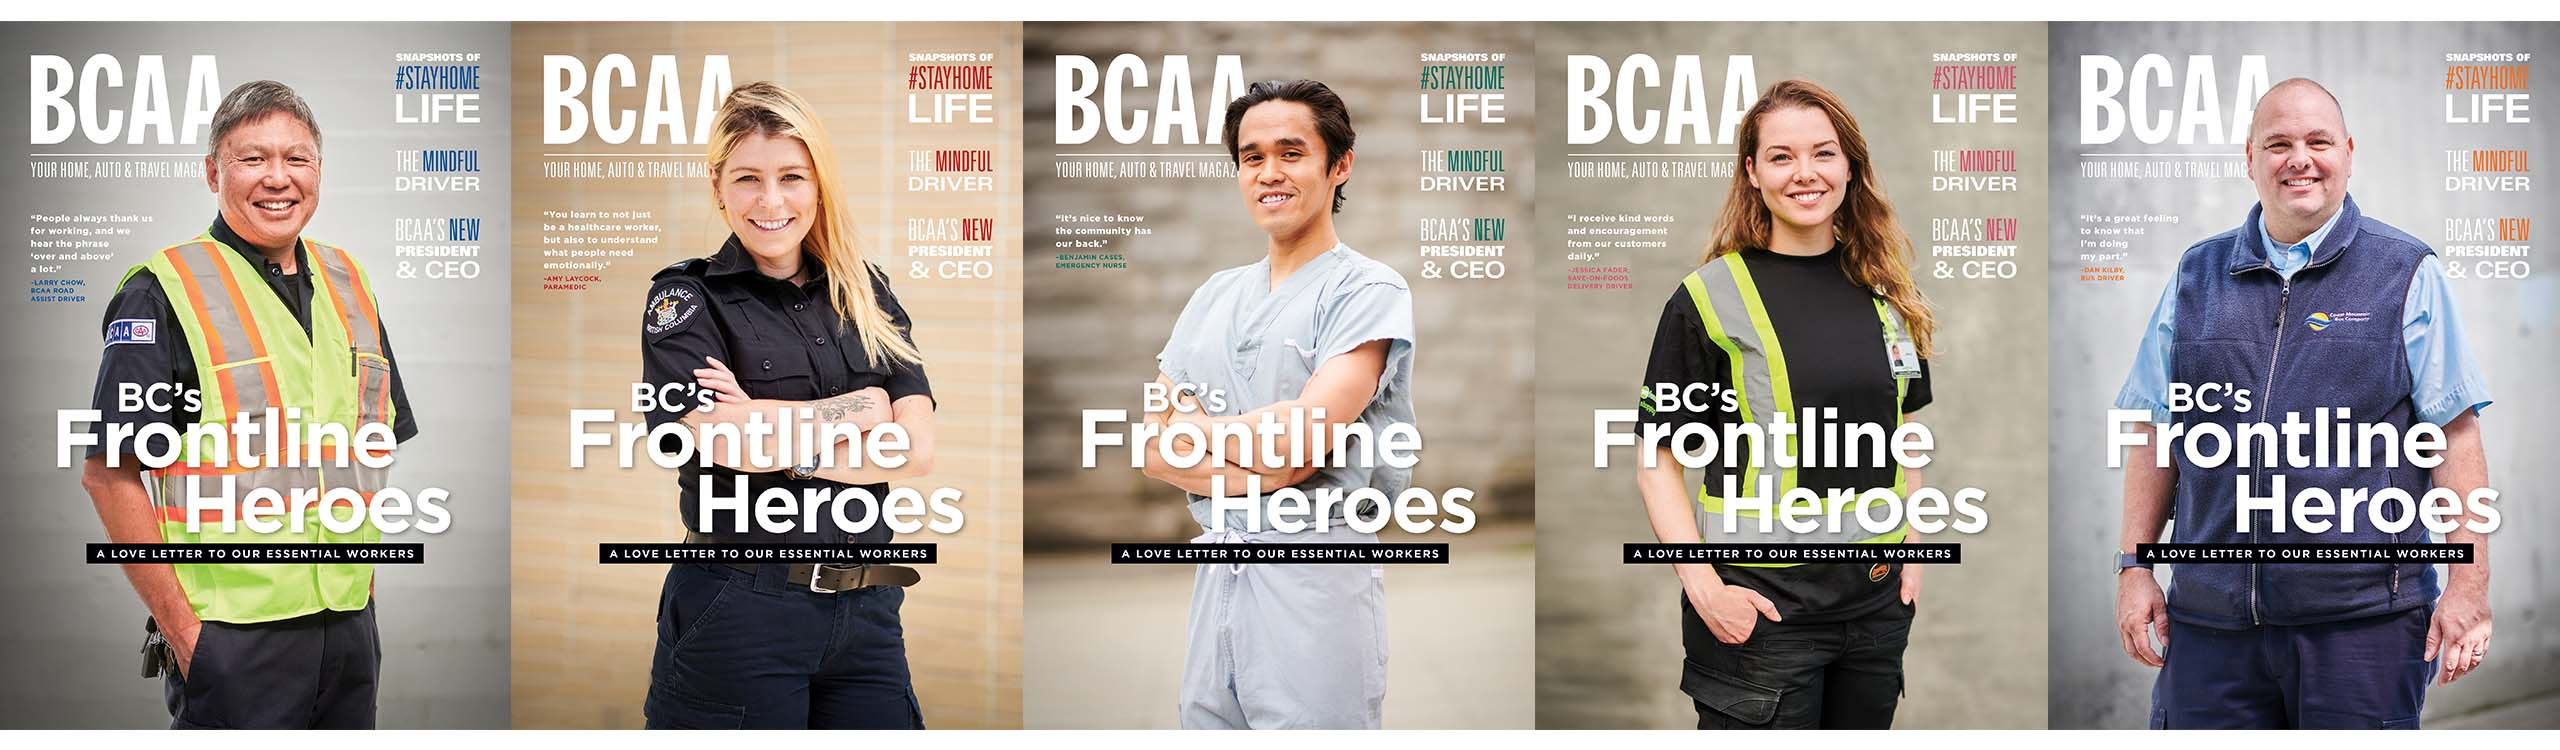 5 BCAA Magazine Covers